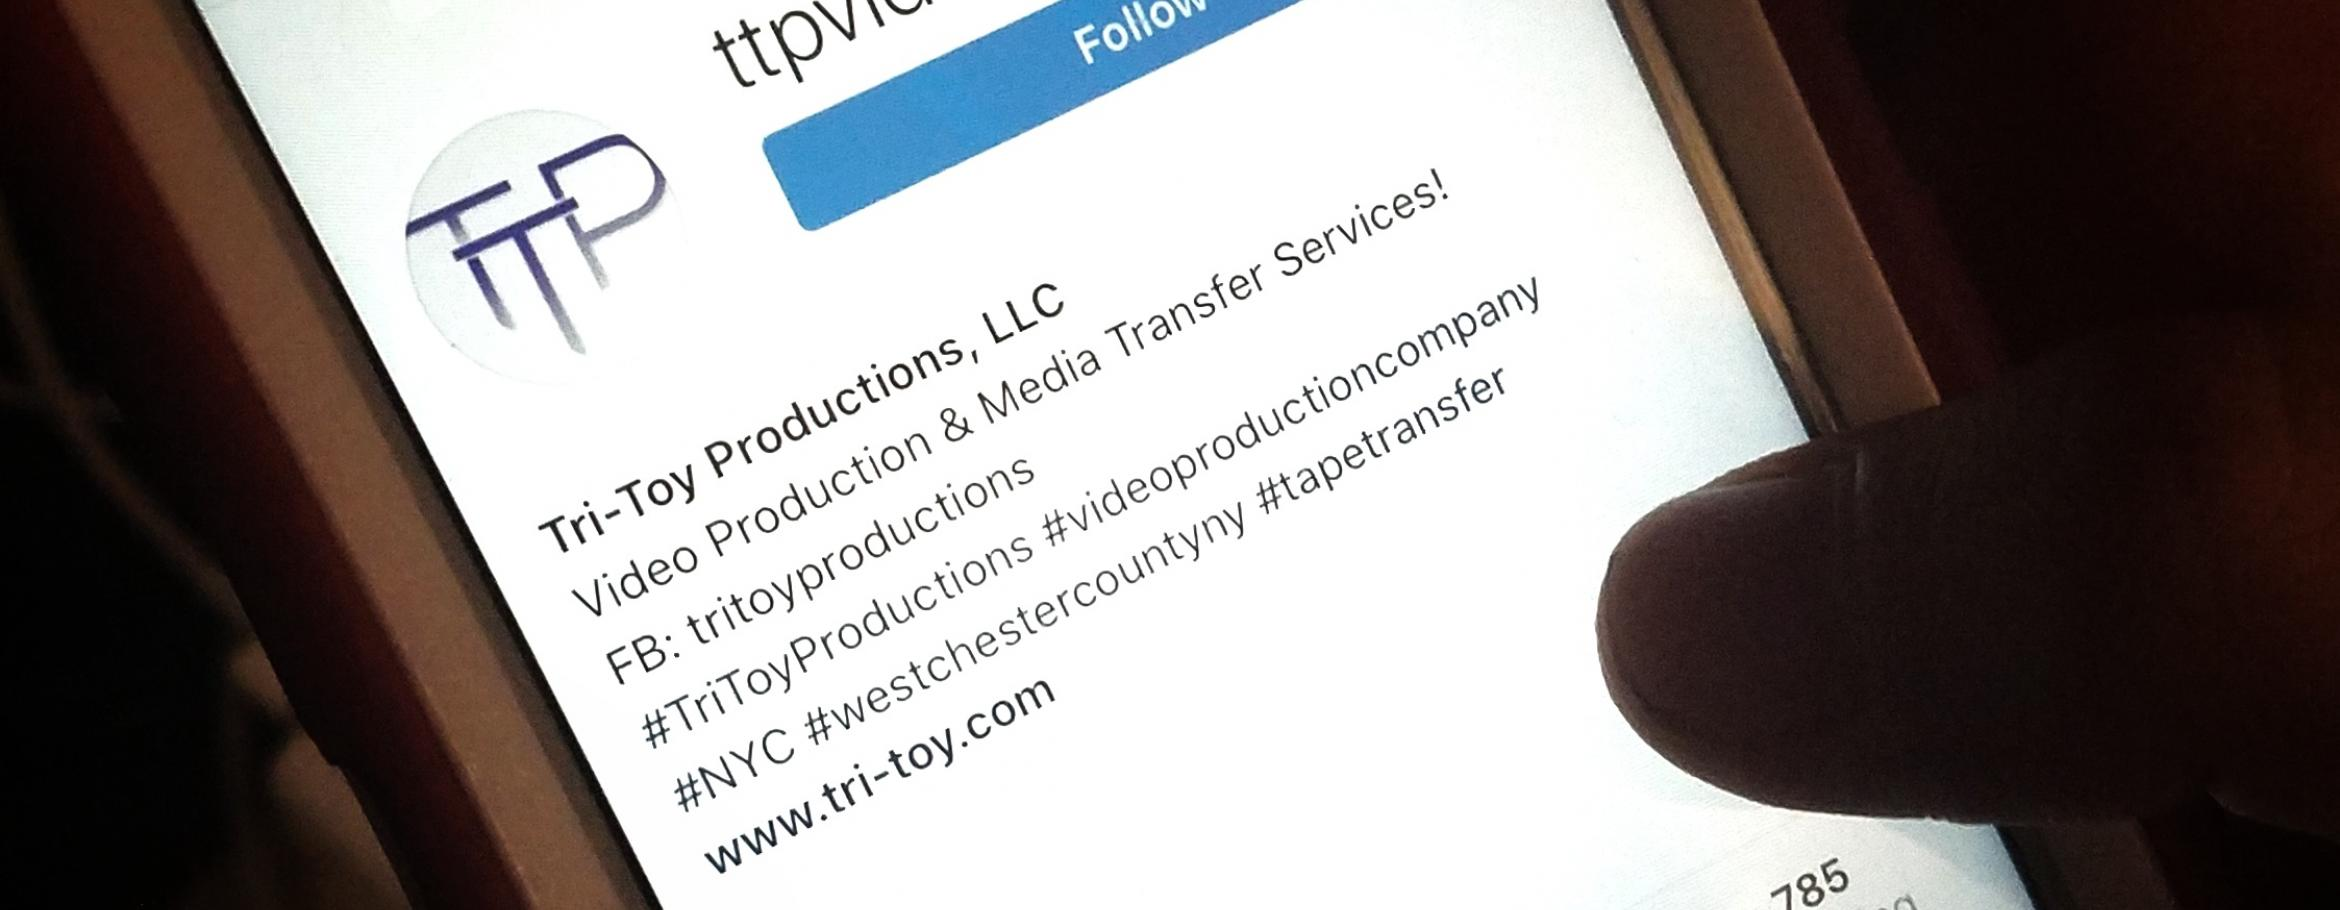 Social Media Vertical Video - Tri-Toy Productions NY, NYC, Westchester